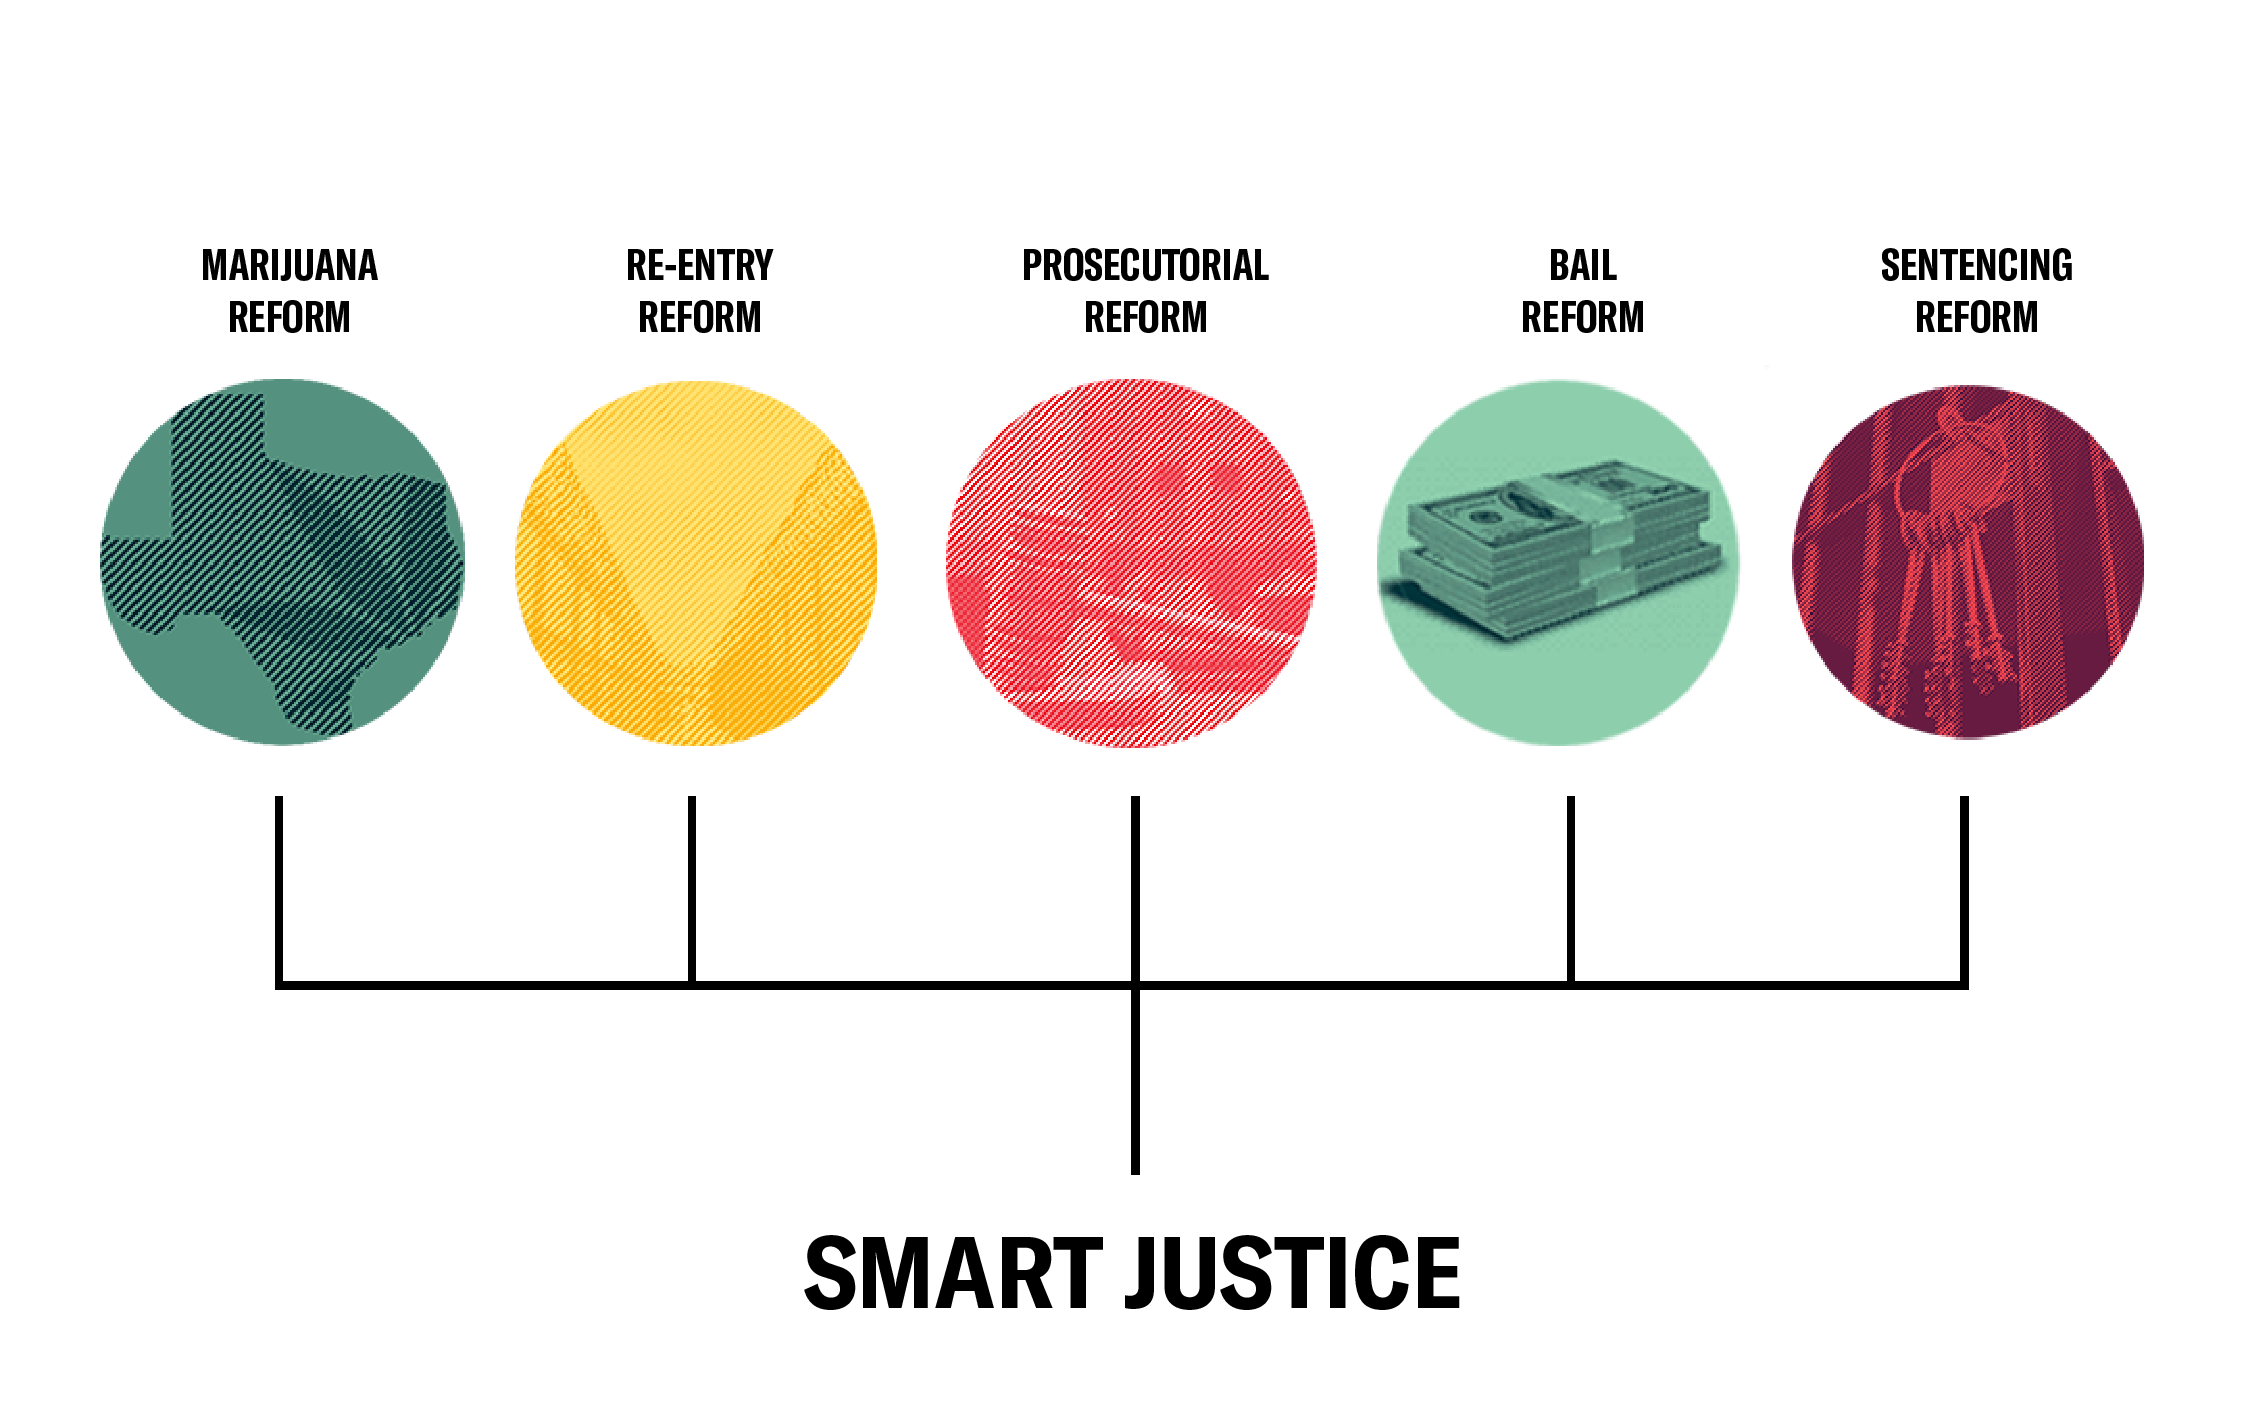 Graphic icons for smart justice reform in Texas